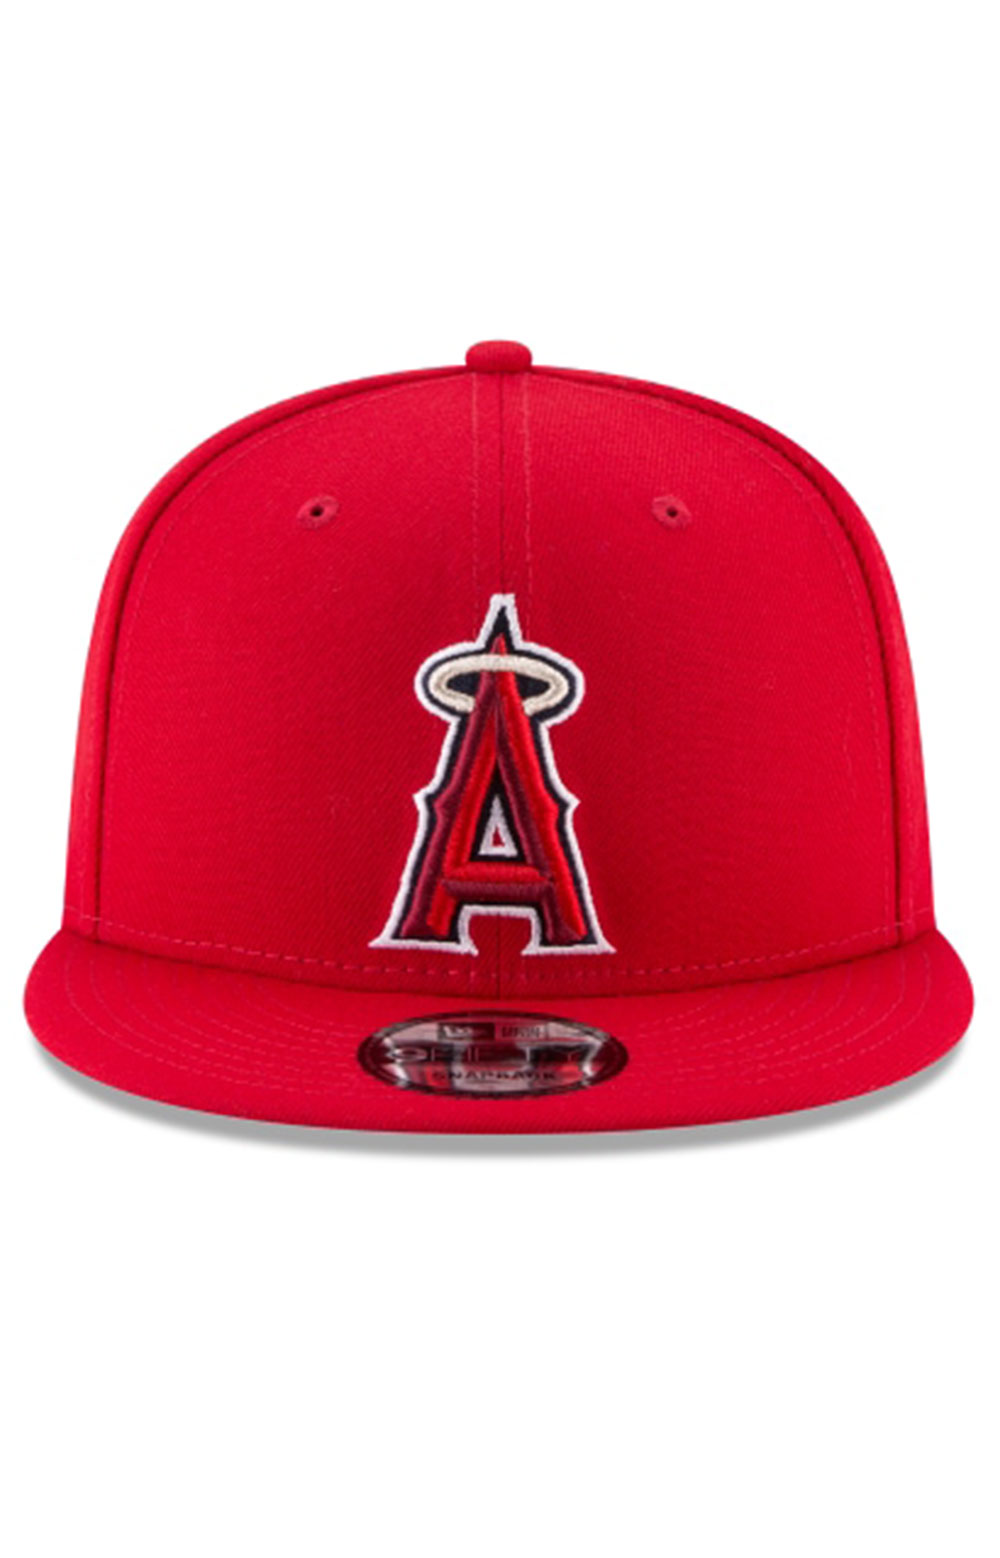 Los Angeles Angels Team Color Basic 9Fifty Snap-Back Hat  5